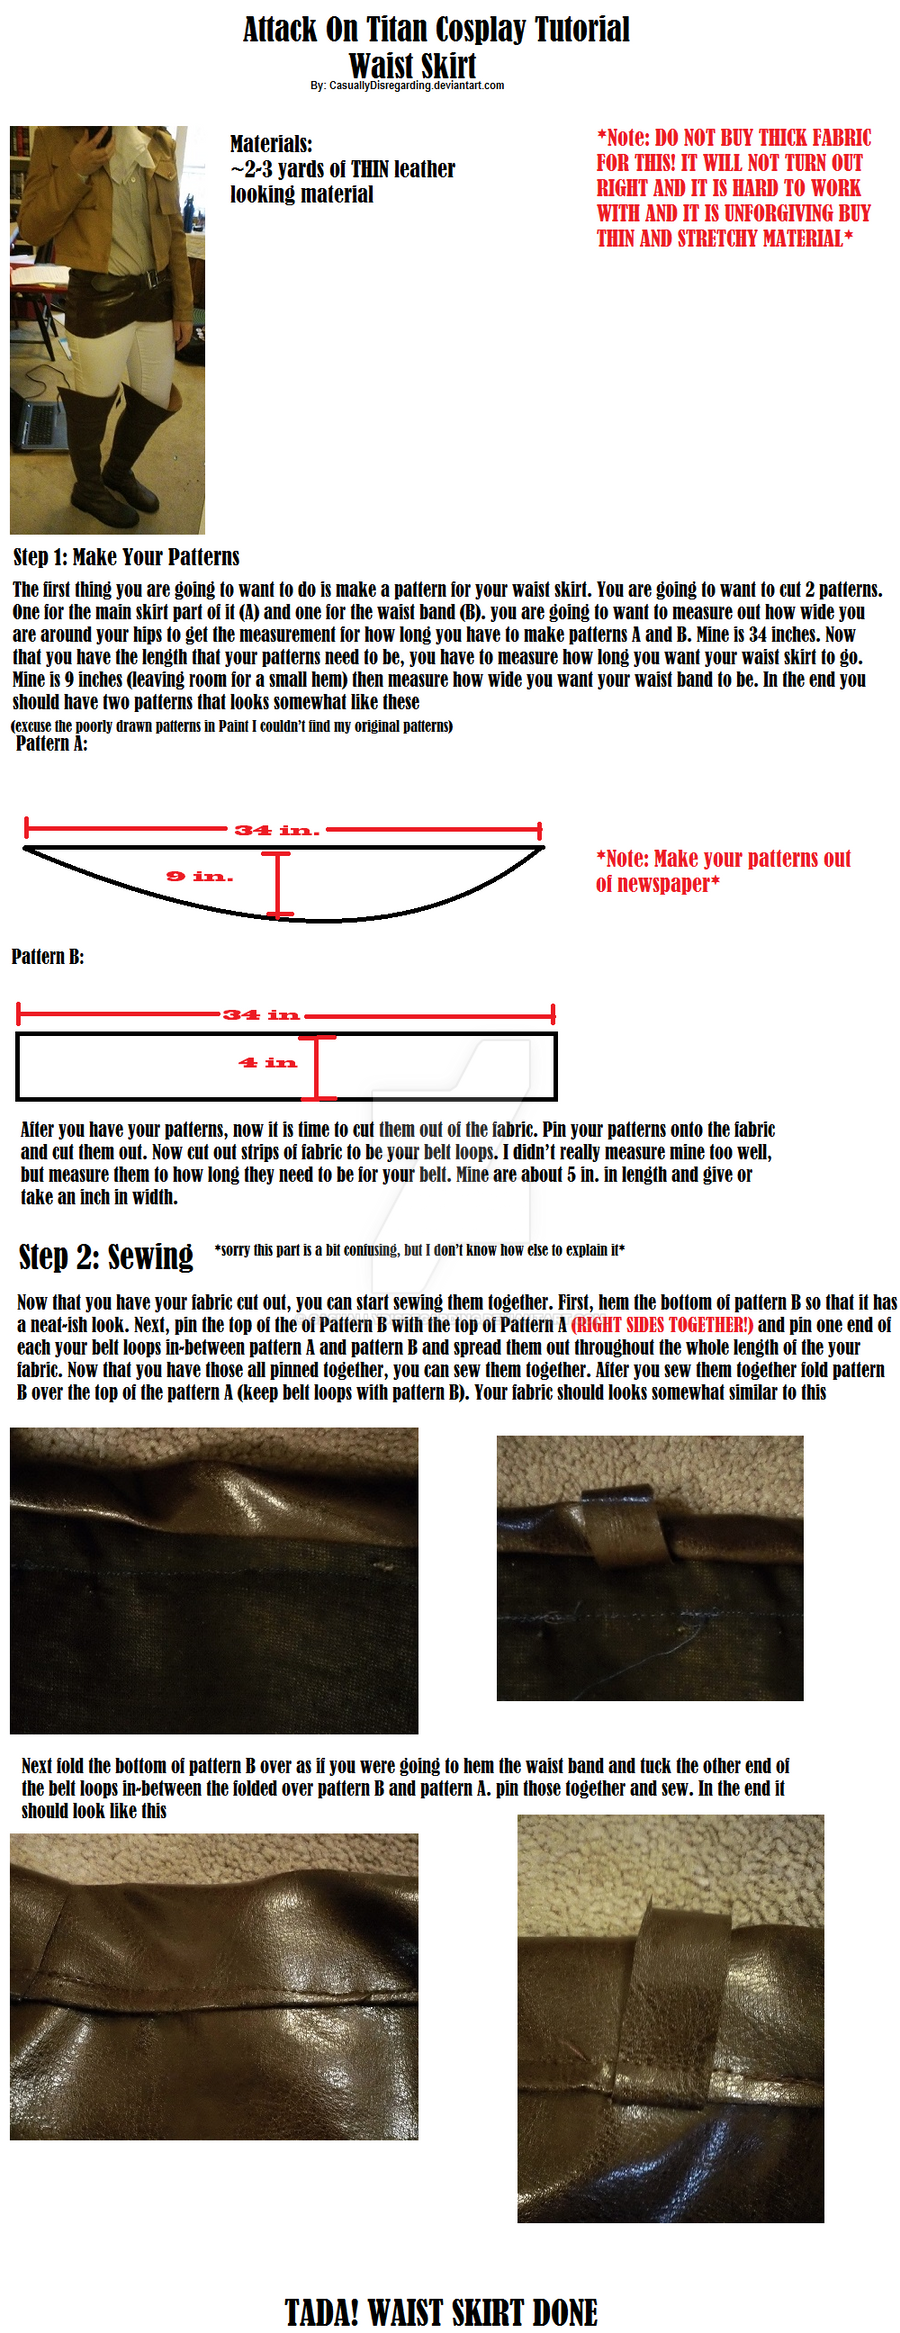 Attack On Titan Waist Skirt Tutorial by CasuallyDisregarding